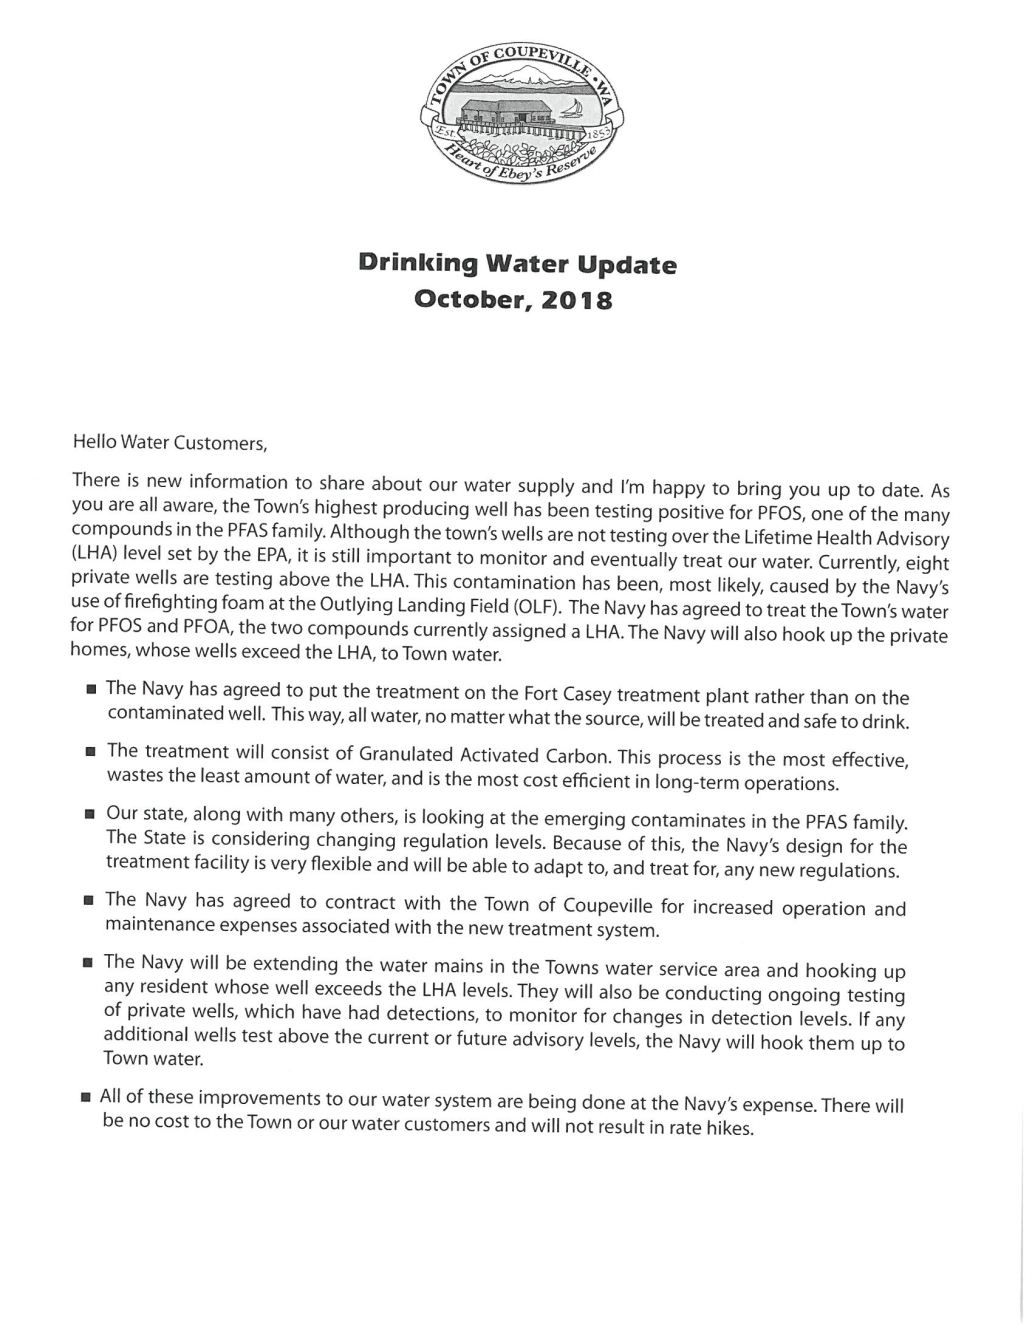 Water Update Letter SEPT 18_Page_1